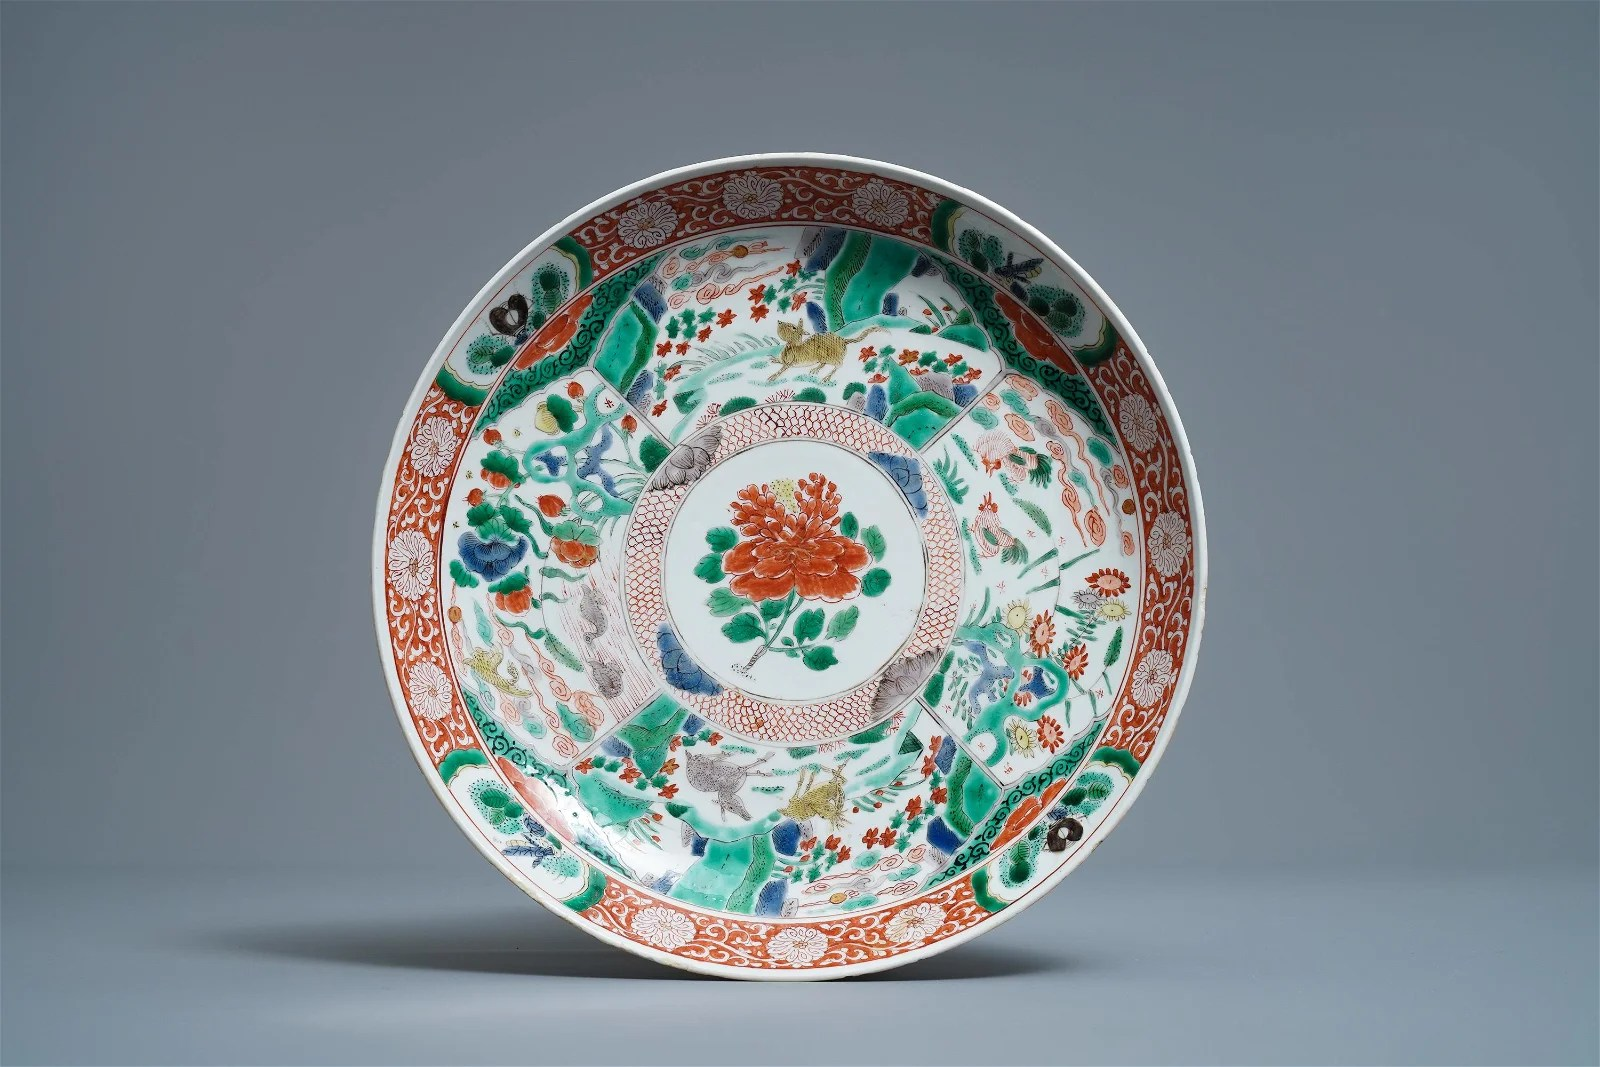 A Chinese famille verte charger with animals and